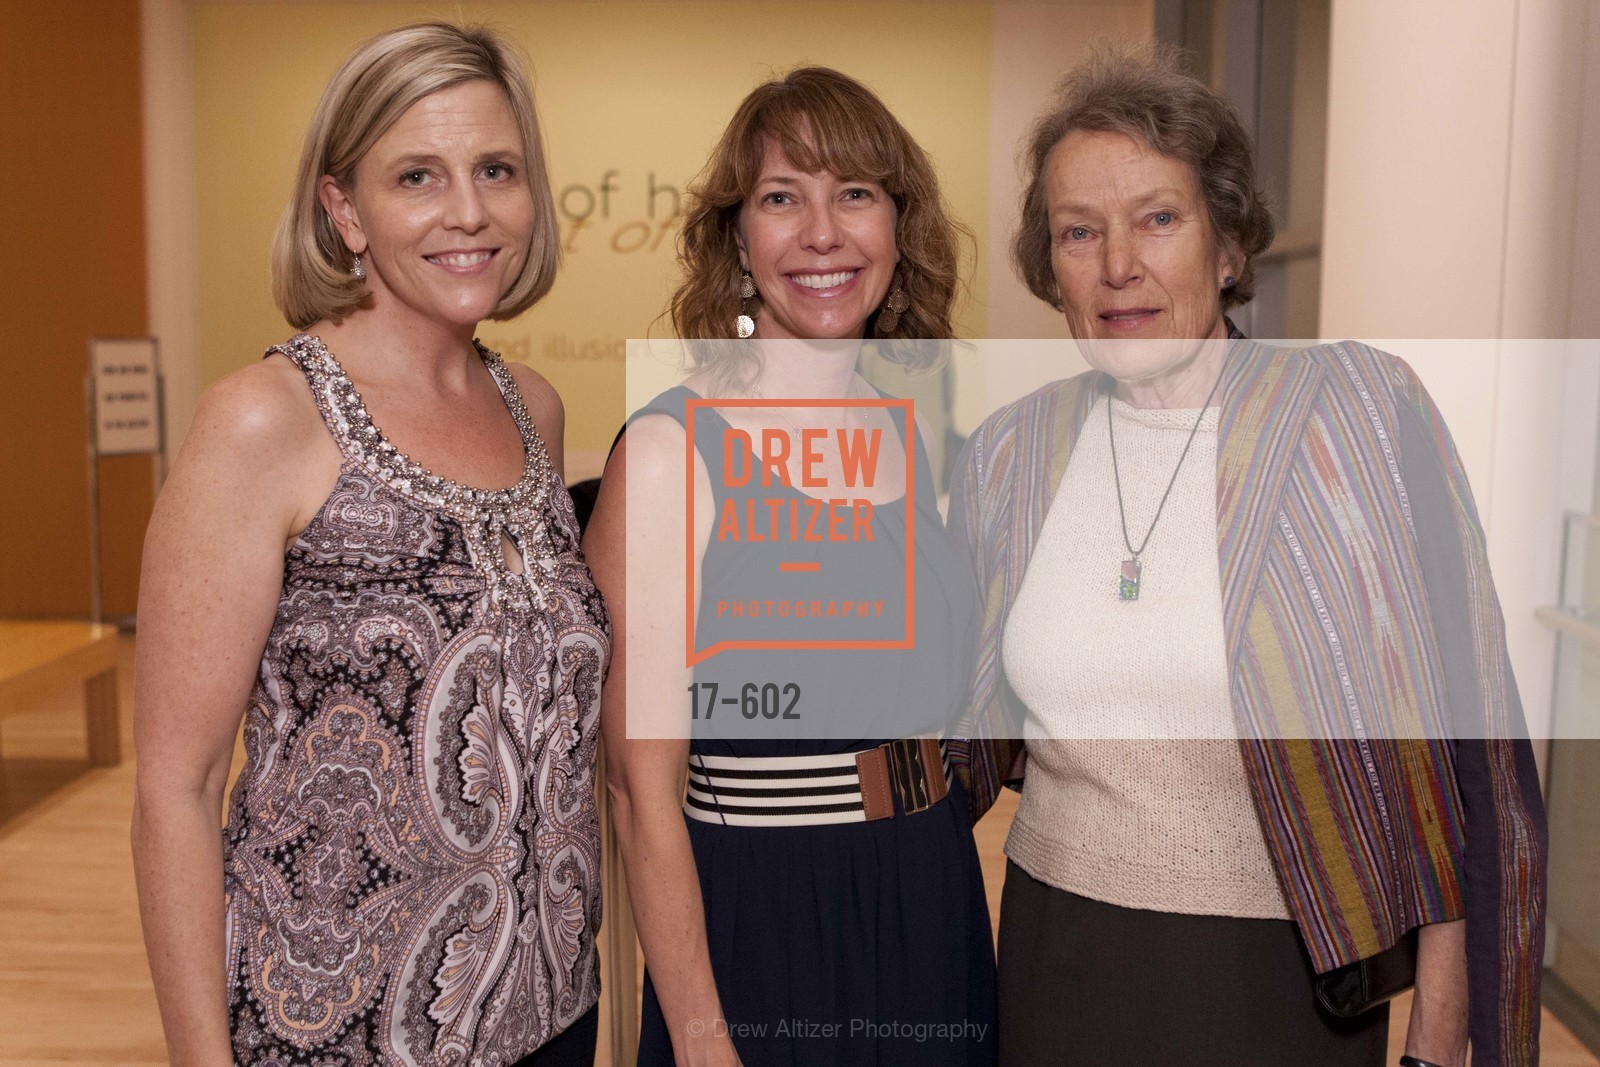 Elizabeth Striebeck, Lucy Larson, Doris Burgess, SAN JOSE MUSEUM OF ART Fall Reception Opening, US, October 9th, 2014,Drew Altizer, Drew Altizer Photography, full-service agency, private events, San Francisco photographer, photographer california